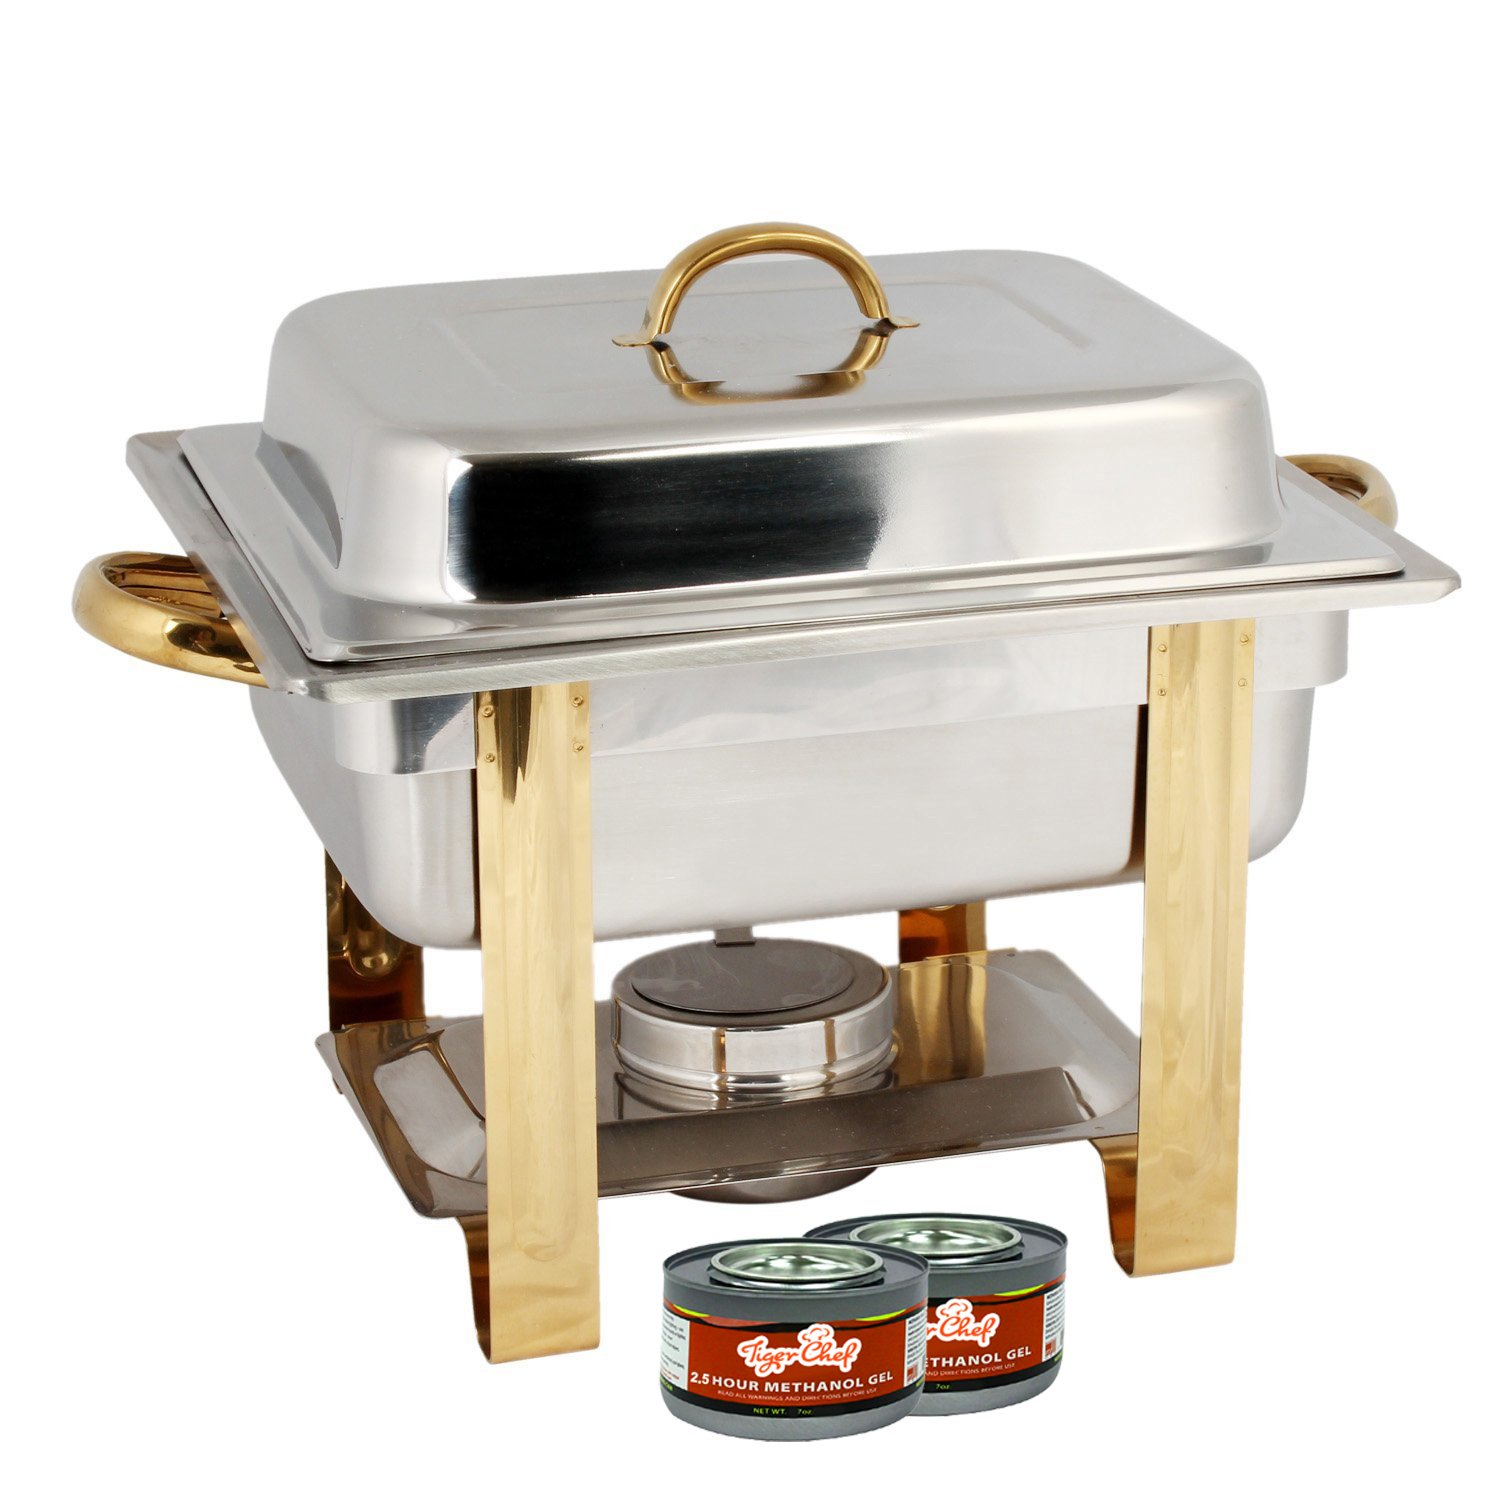 TigerChef TC-20415 Half Size Chafing Dish Buffet Warmer Set, Gold Accented, Includes 2 Free Chafing Fuel Gels, Stainless Steel, 4 Quart